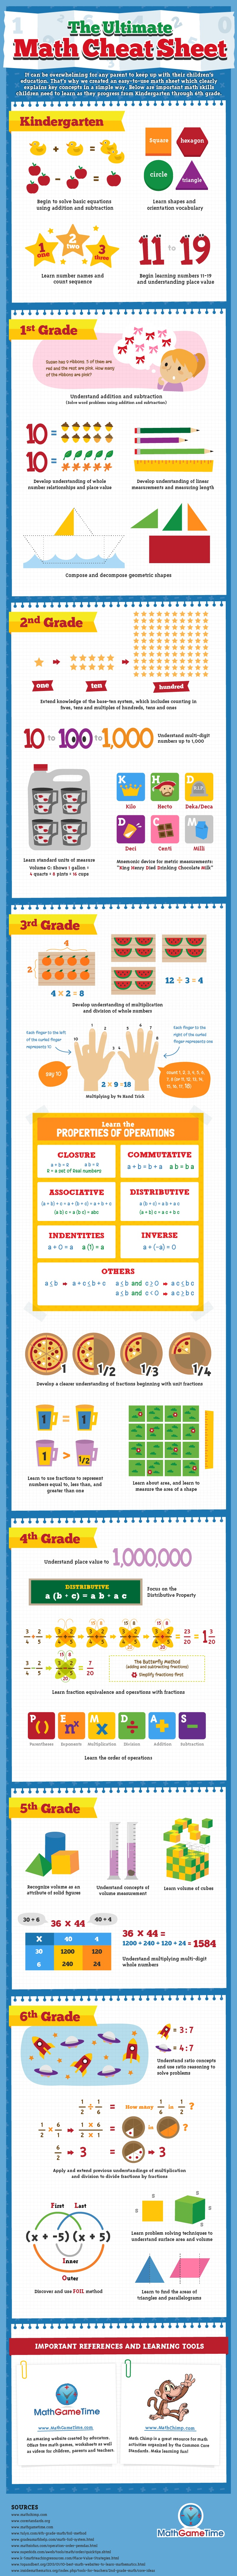 The Ultimate K-6 Math Cheat Sheet Infographic - http ...